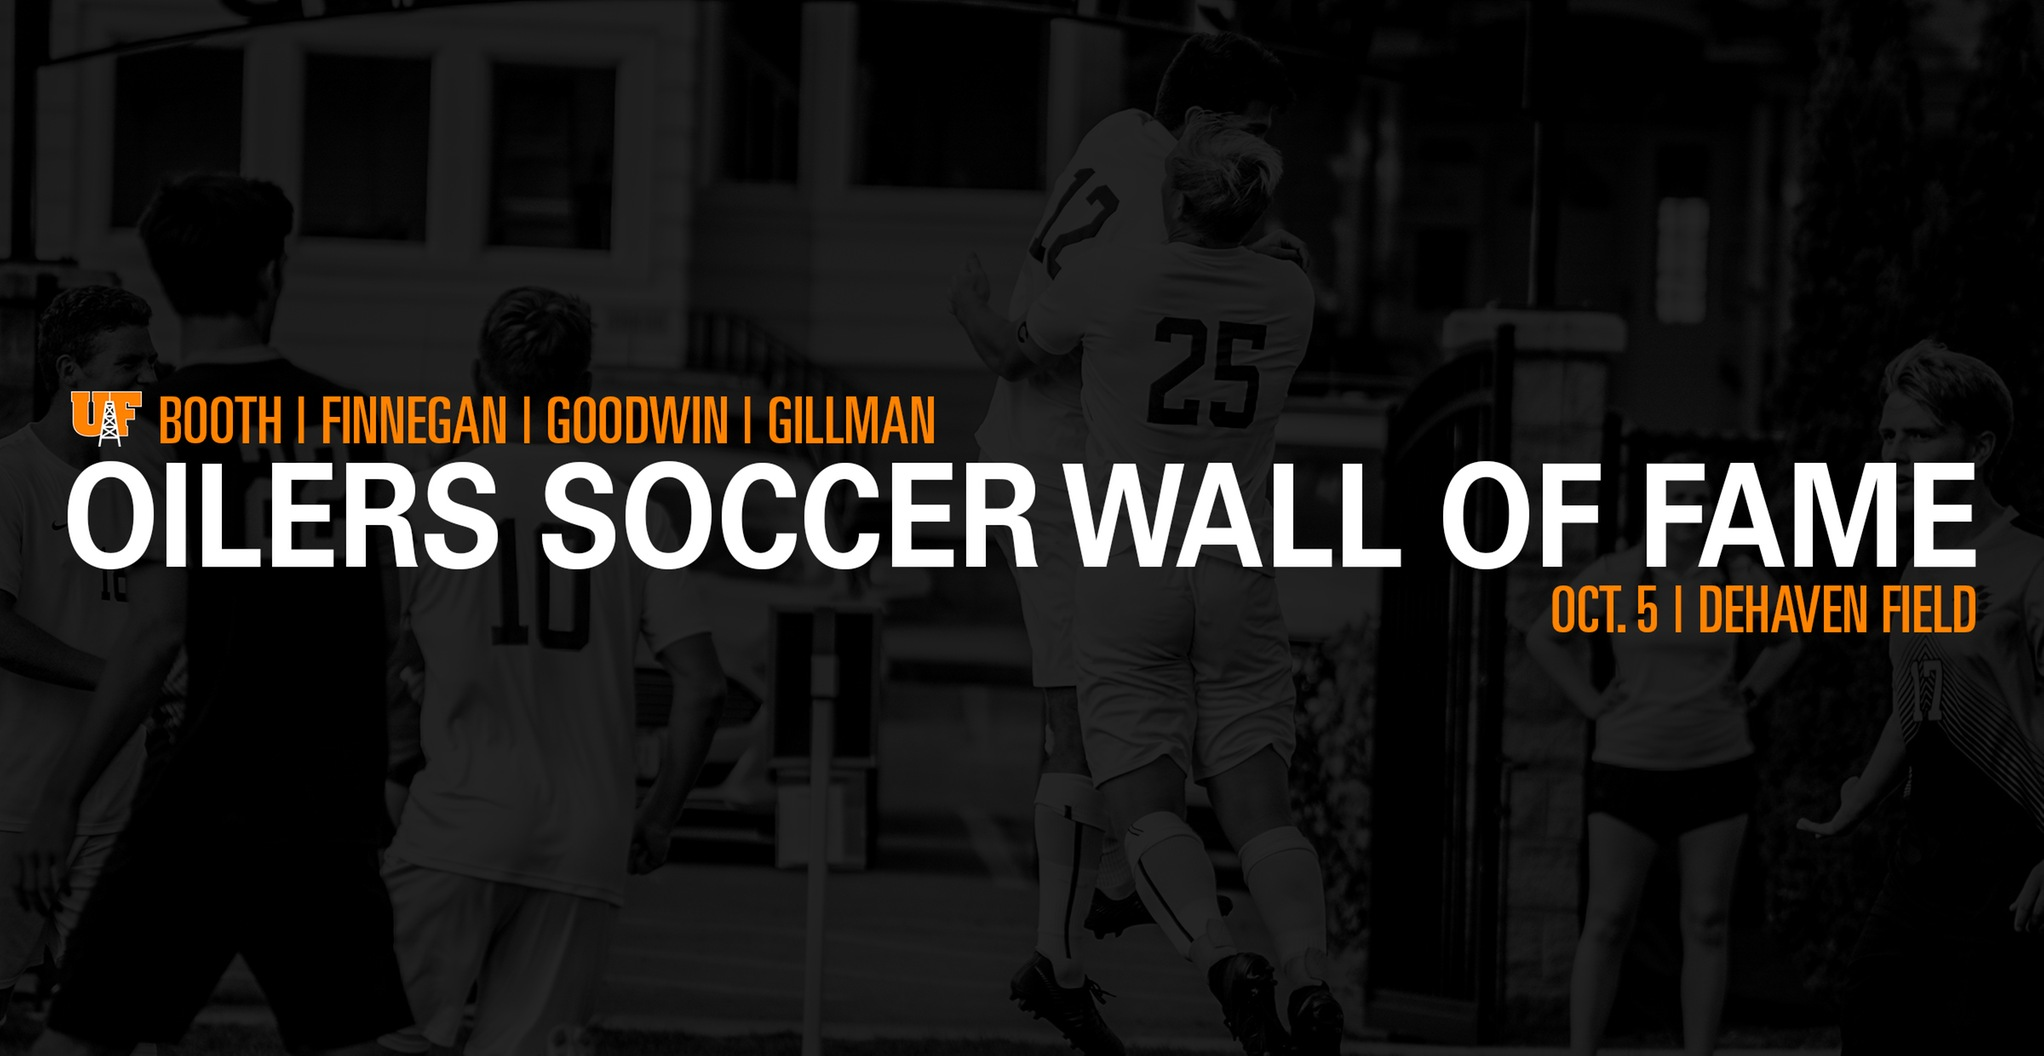 Oilers Soccer Wall of Fame Scheduled for Oct. 5